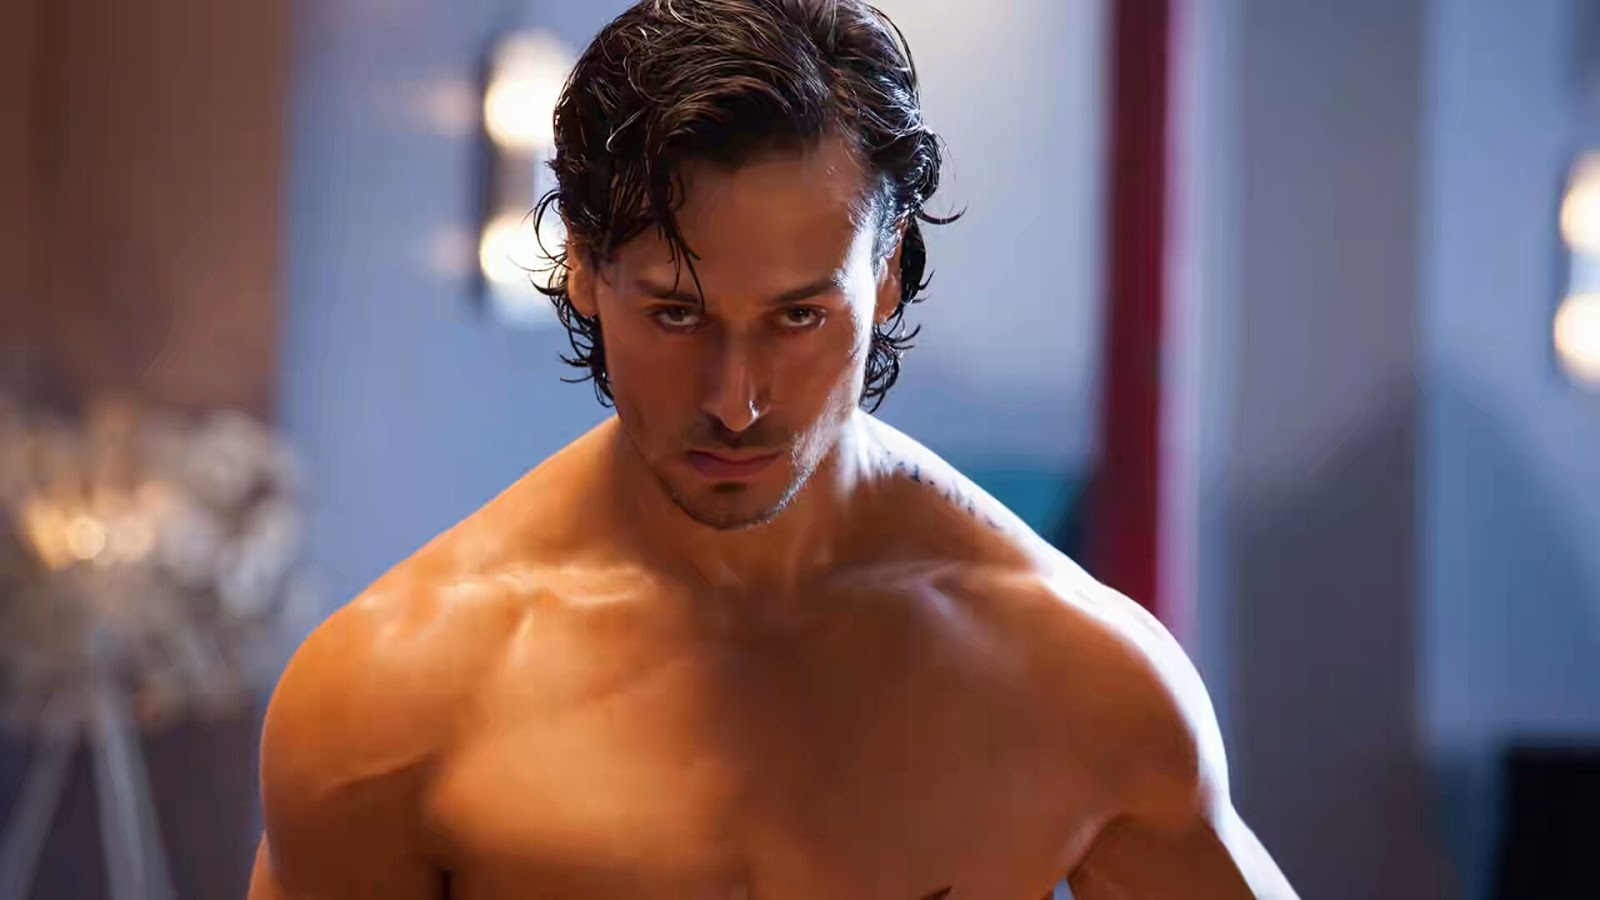 Tiger Shroff Wallpapers Hd Download Free 1080p Colorfullhdwallpapers Upcoming Latest Bollywood